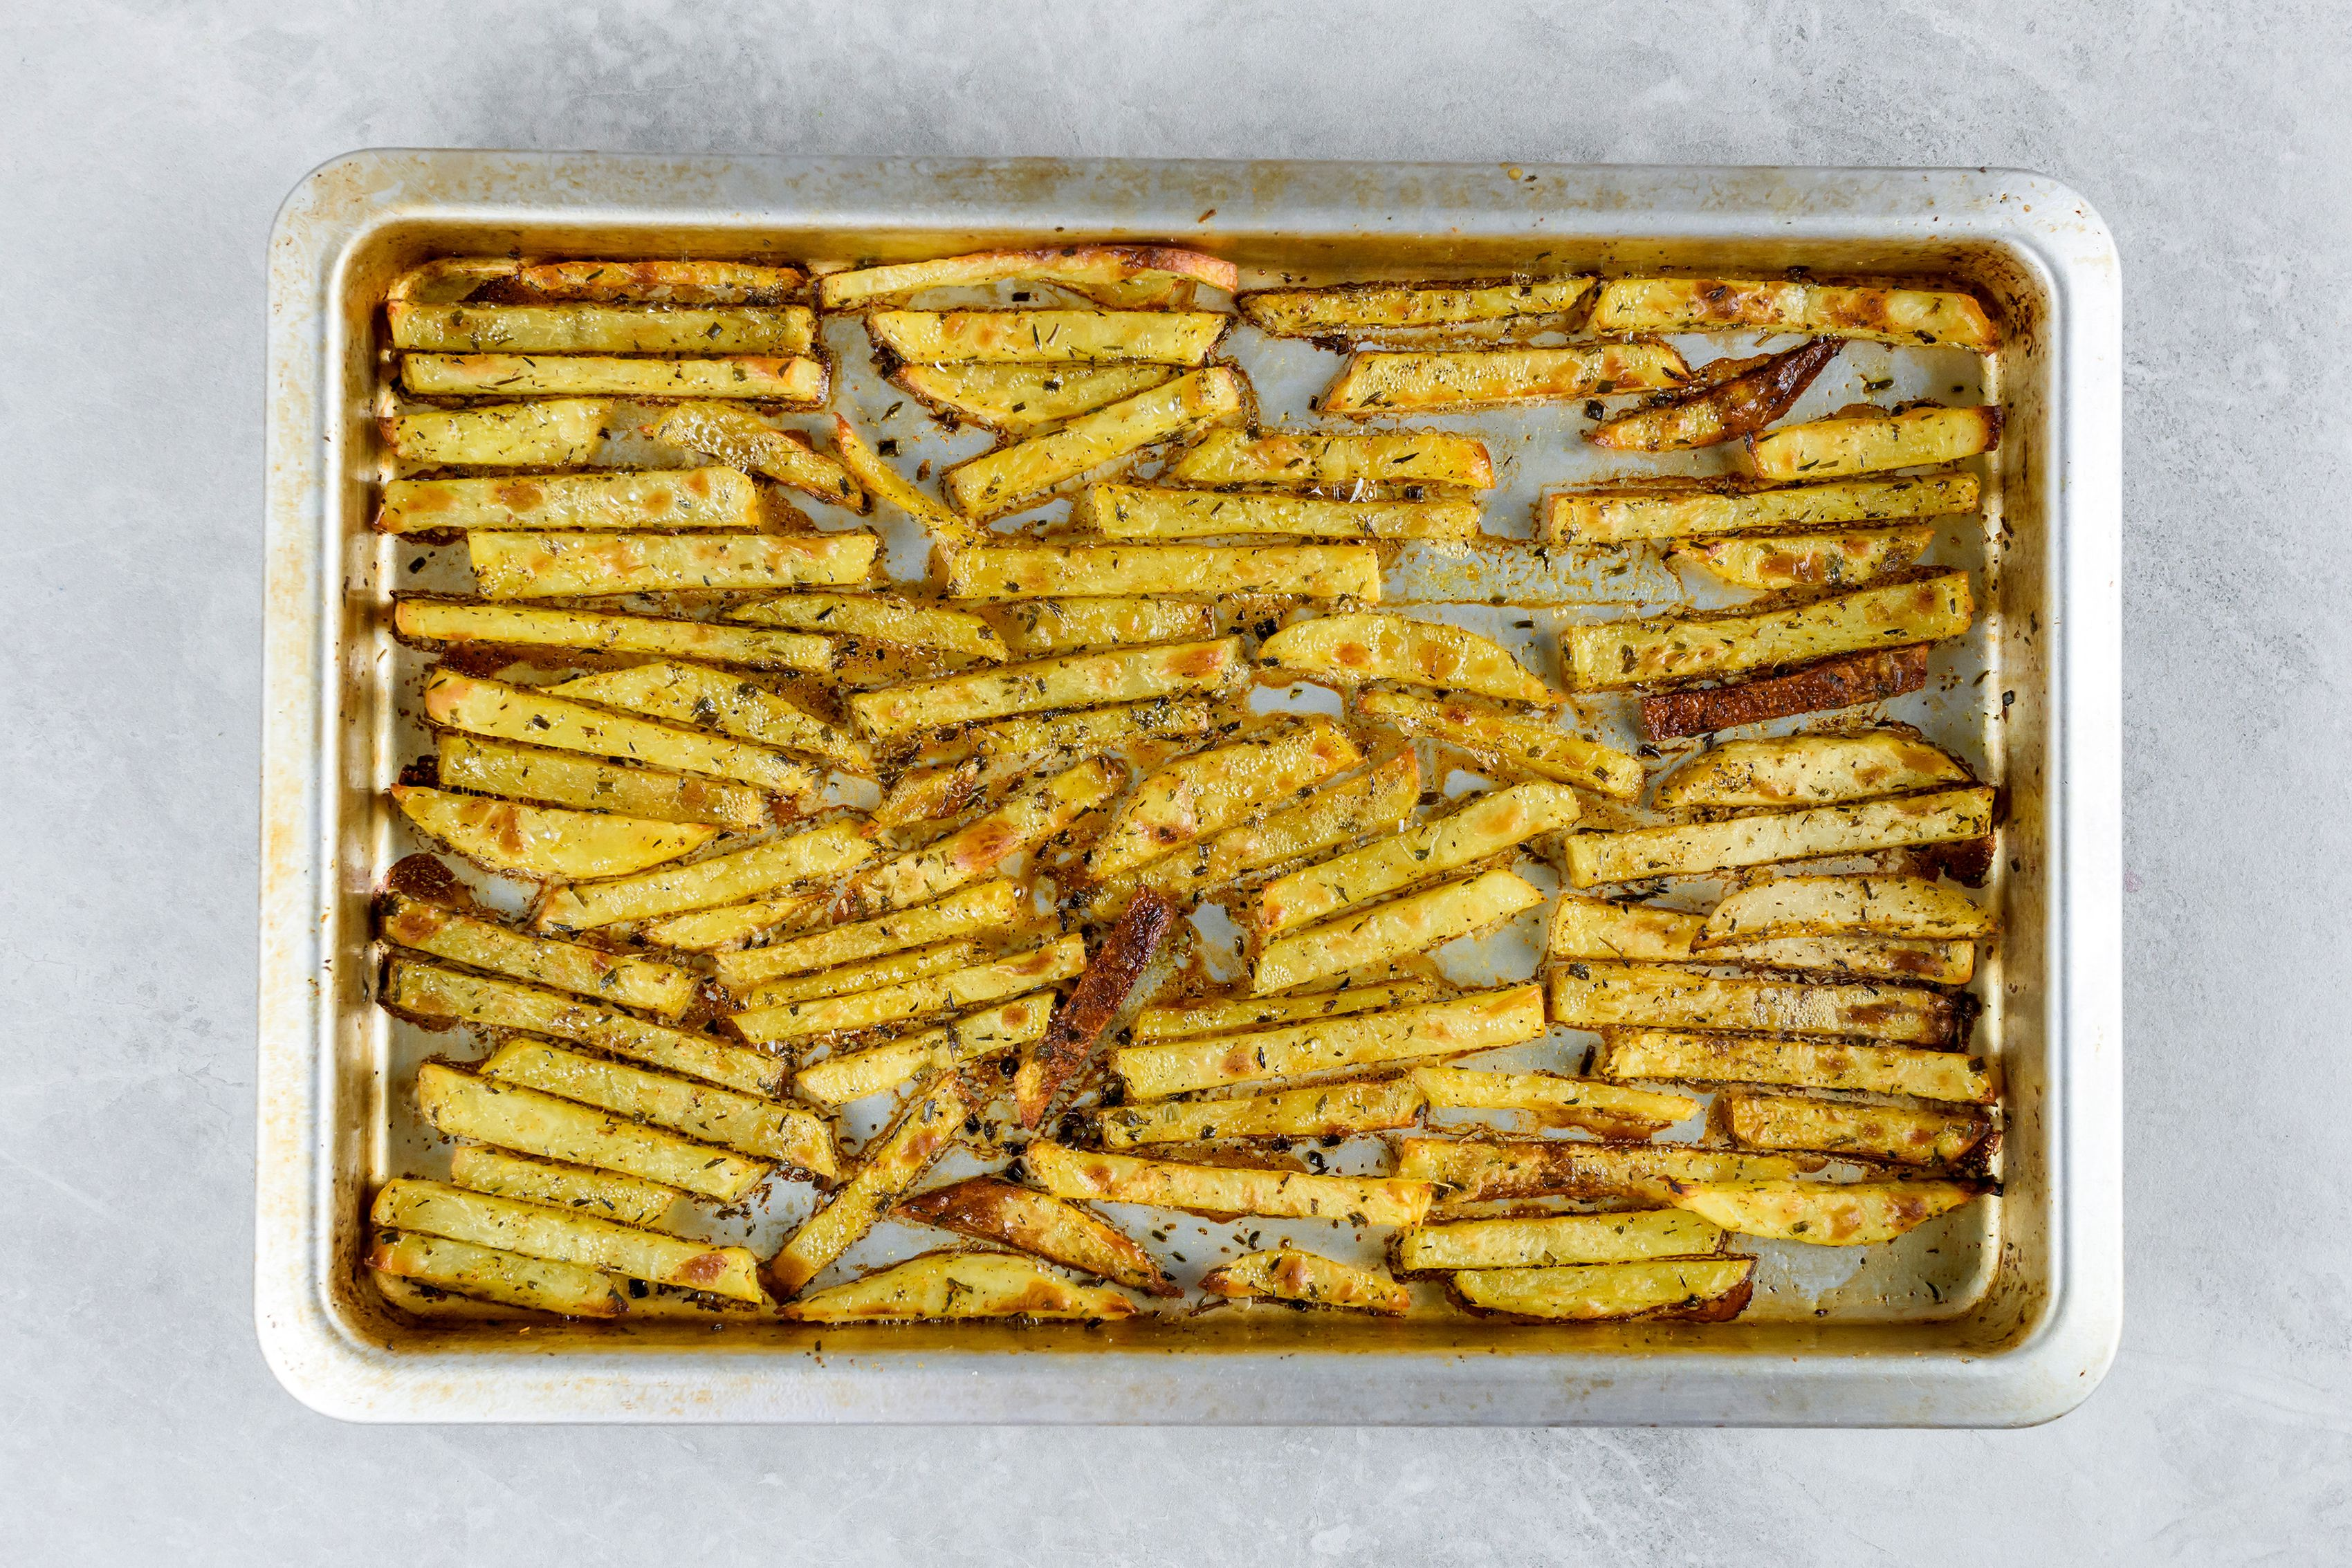 Oven fries baked until brown and crispy